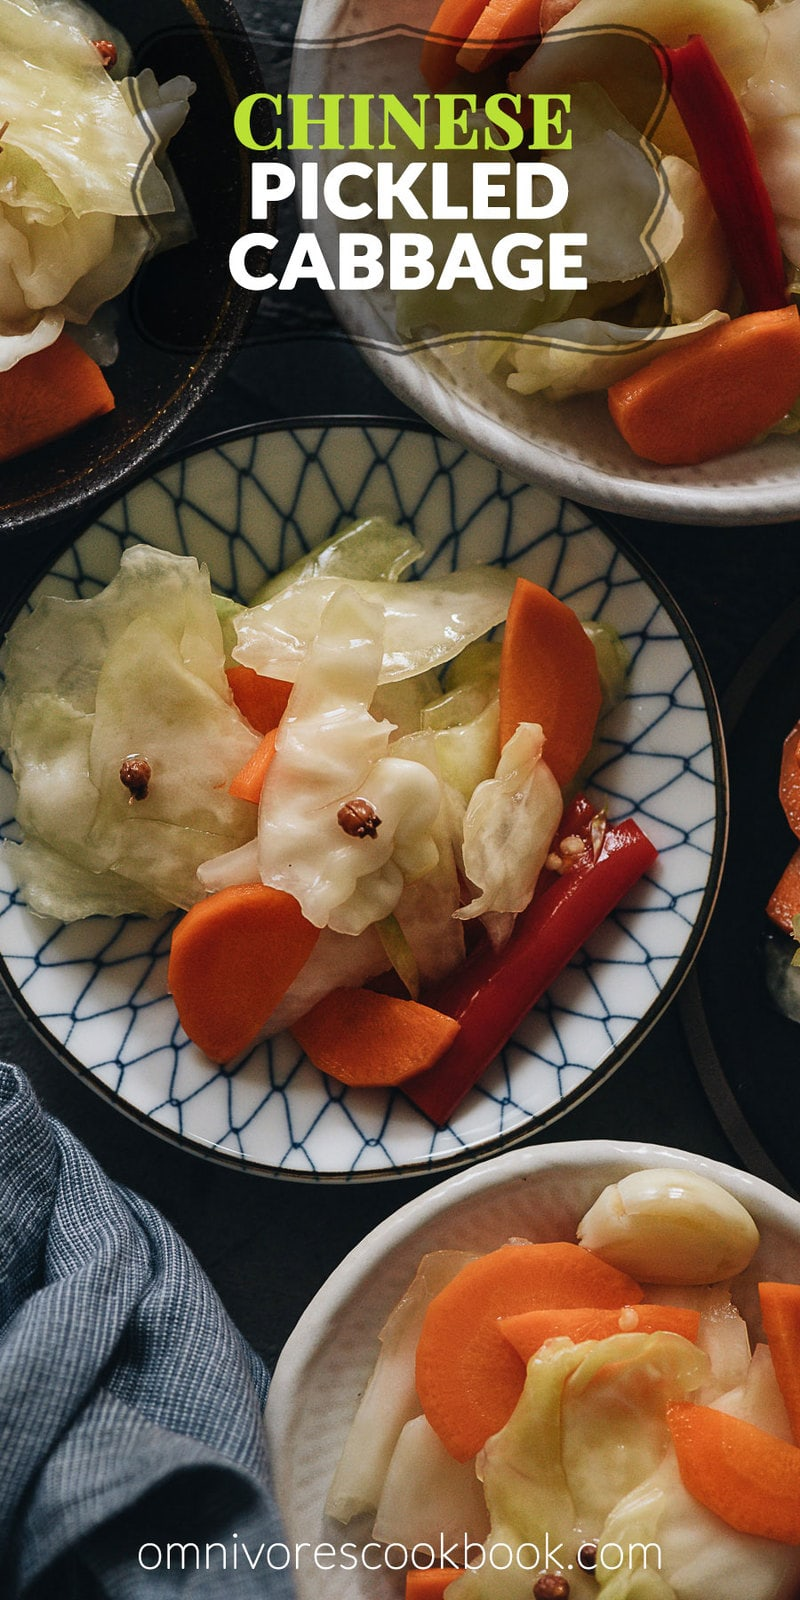 Chinese Pickled Cabbage (A Quick Pickle Recipe) | Make crunchy Chinese pickled cabbage with this quick pickle recipe. It is so easy to prepare, and the result is a well-balanced crisp sweet and sour pickle just like the appetizer you'd get at a Chinese restaurant. {Vegan, Gluten-Free}